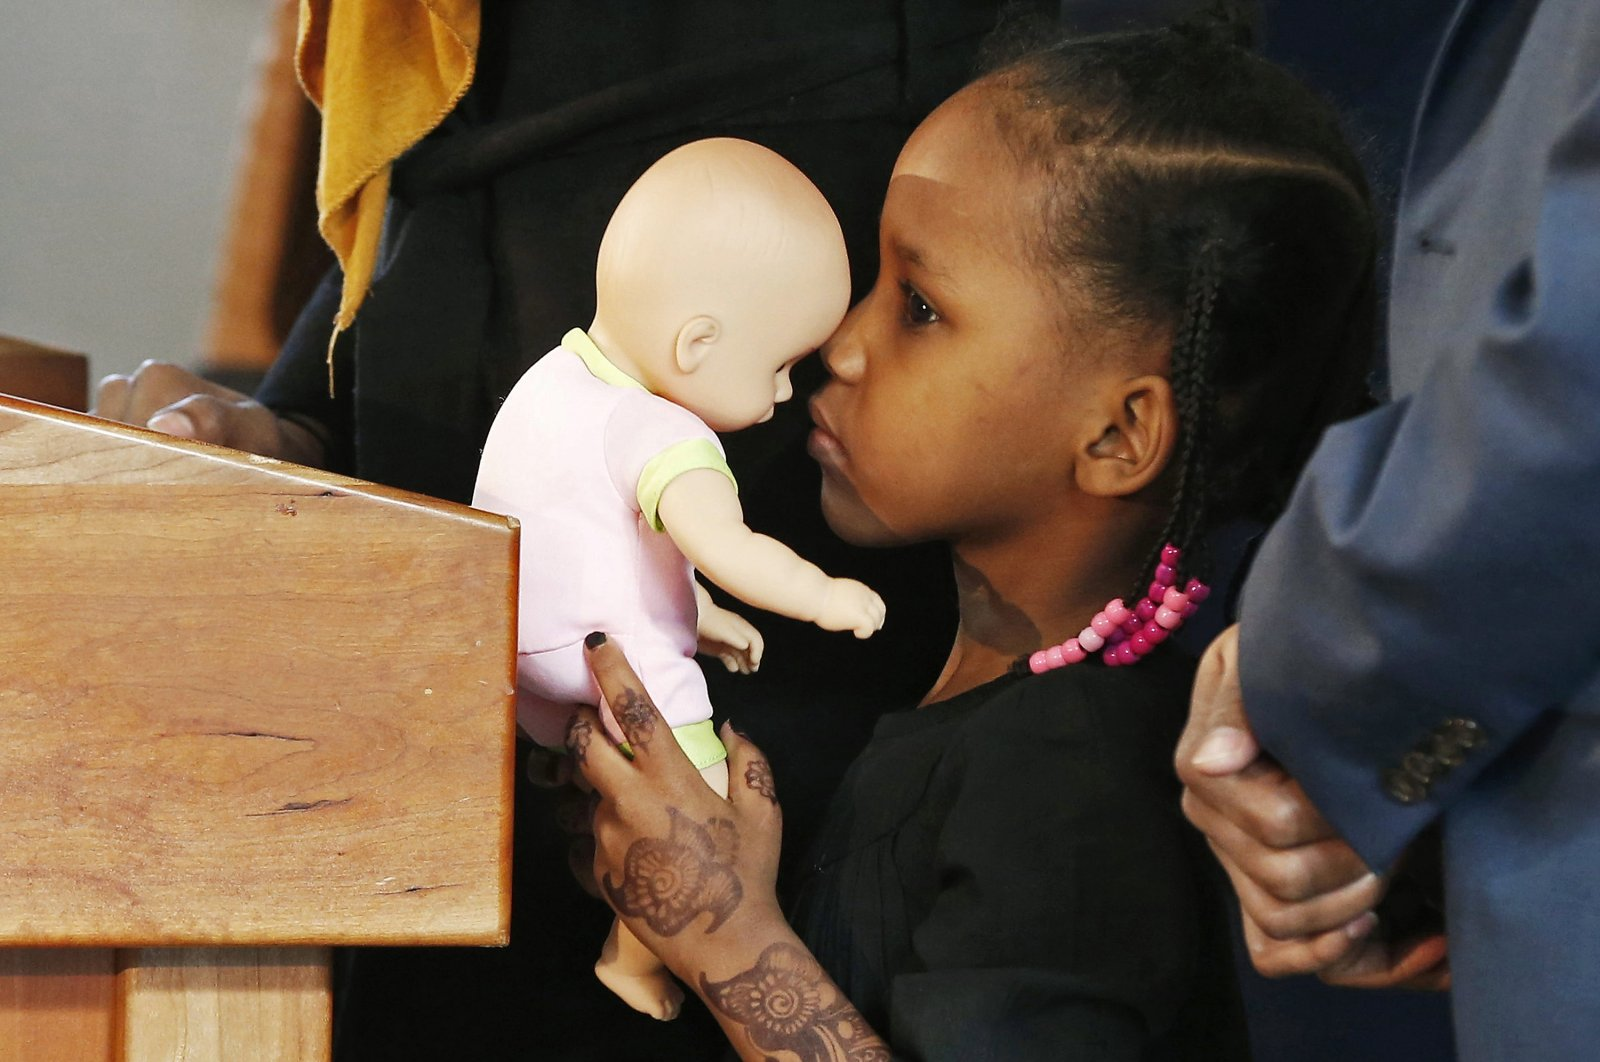 Four-year-old Somali refugee Mushkaad Abdi holds her doll as her mother, Samira Dahir, talks during a Minneapolis news conference one day after she was reunited with her family, Feb. 3, 2017. (AP Photo)